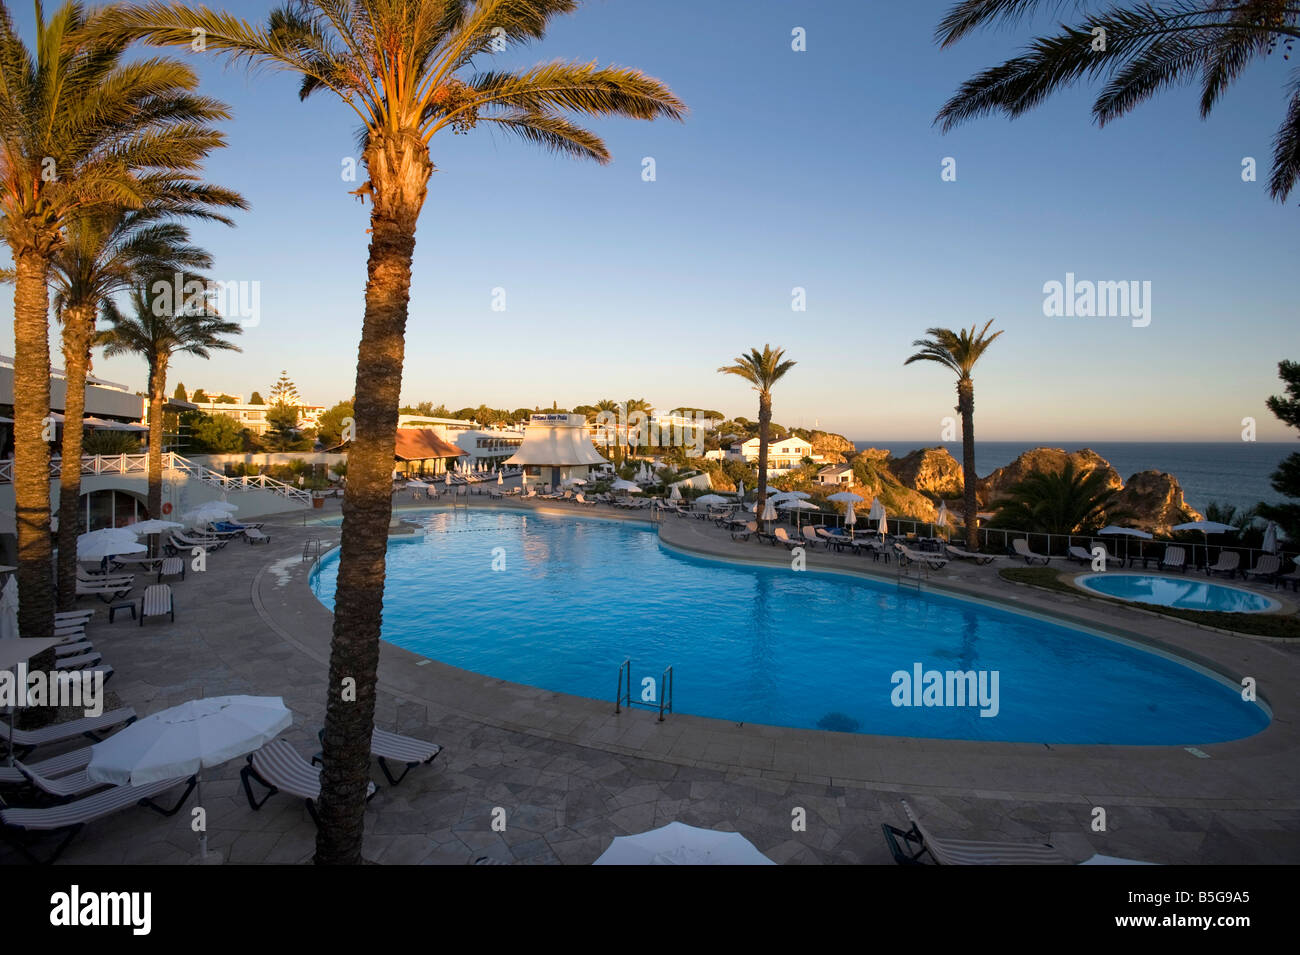 Hotel swimming pool,Algarve Portugal - Stock Image